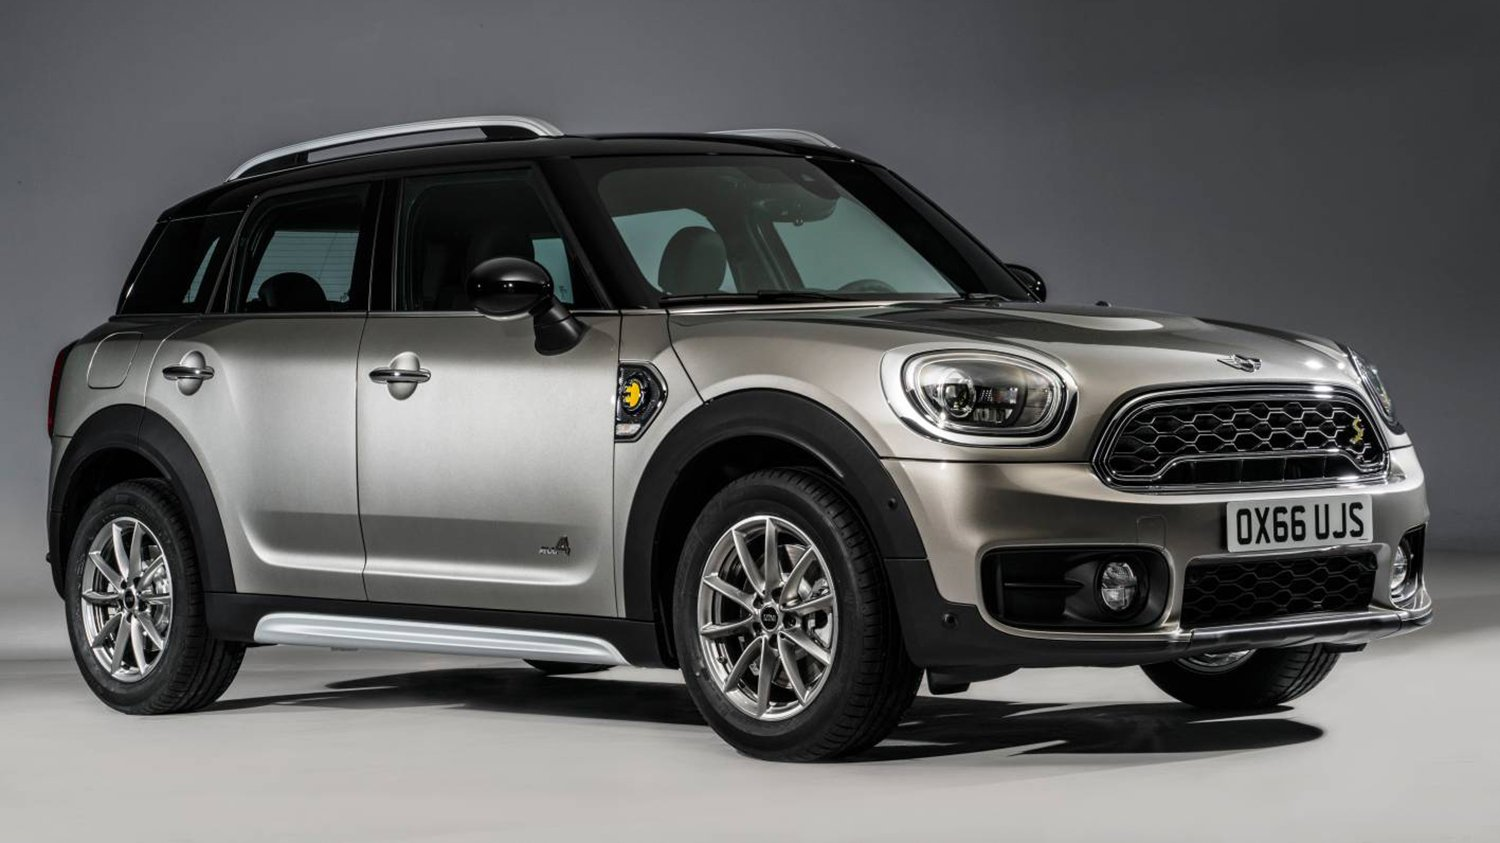 2017 mini cooper s e countryman all4 brand 39 s first phev detailed on the cards for australia. Black Bedroom Furniture Sets. Home Design Ideas